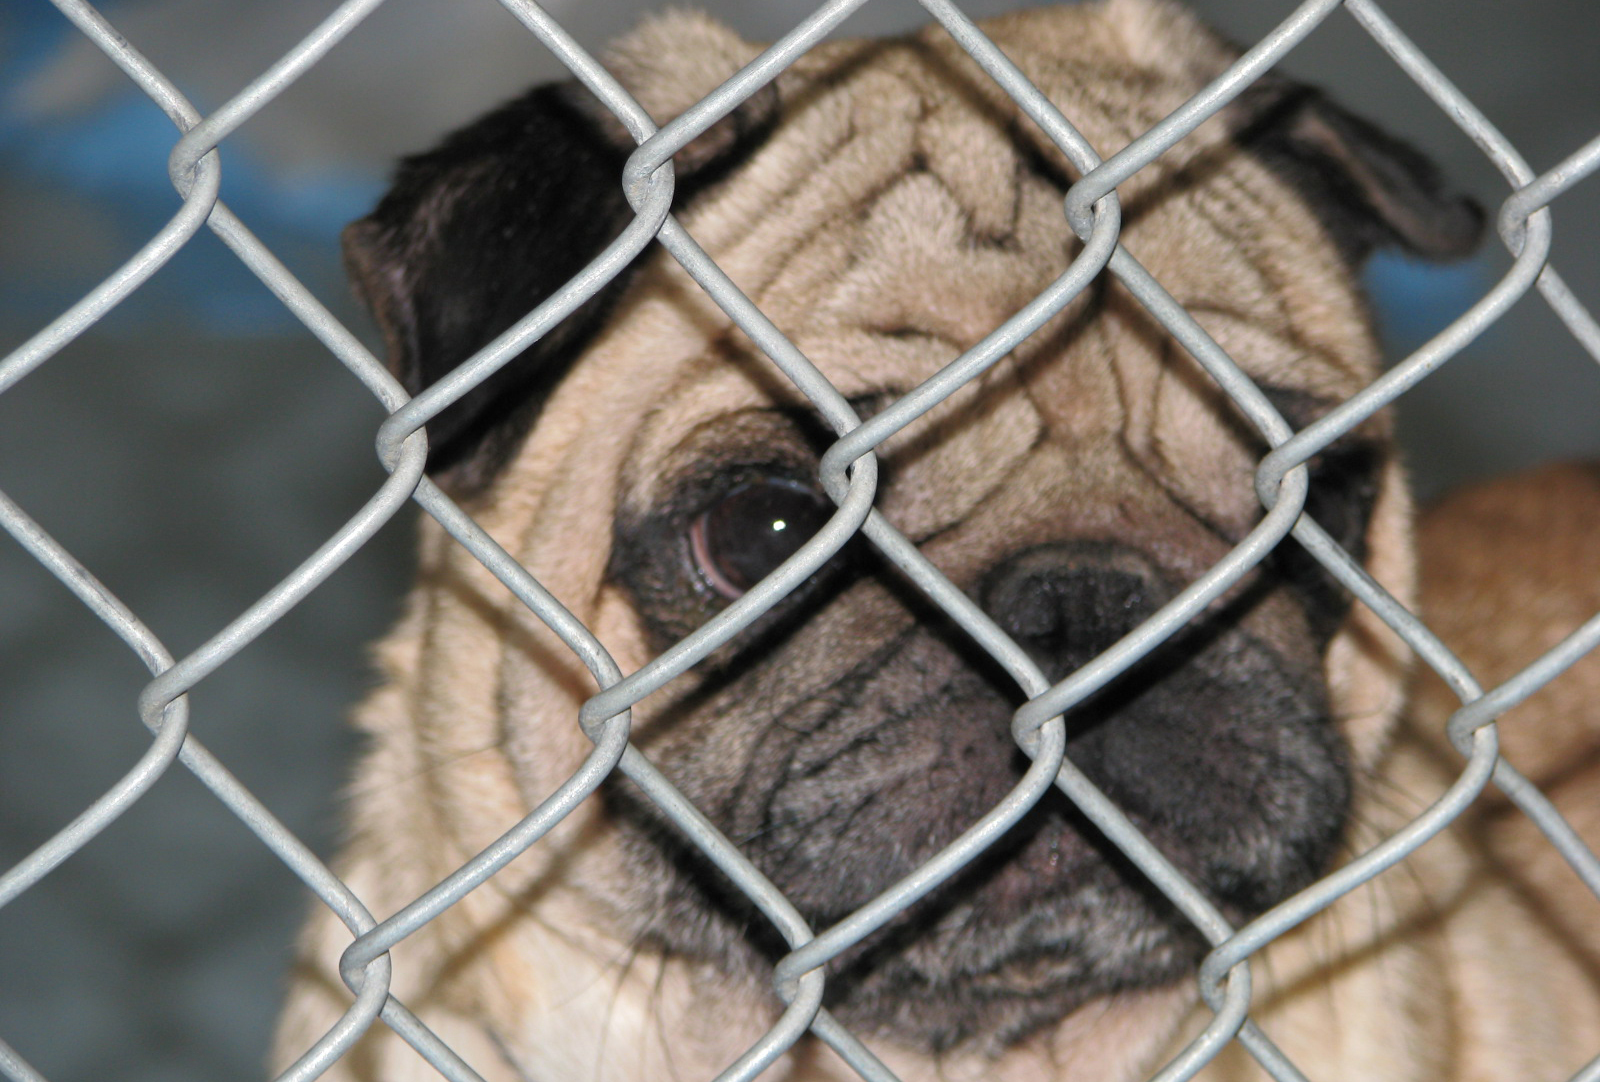 puppy mills For more than three decades, the animal legal defense fund has been fighting to protect the lives and advance the interests of animals through the legal system.